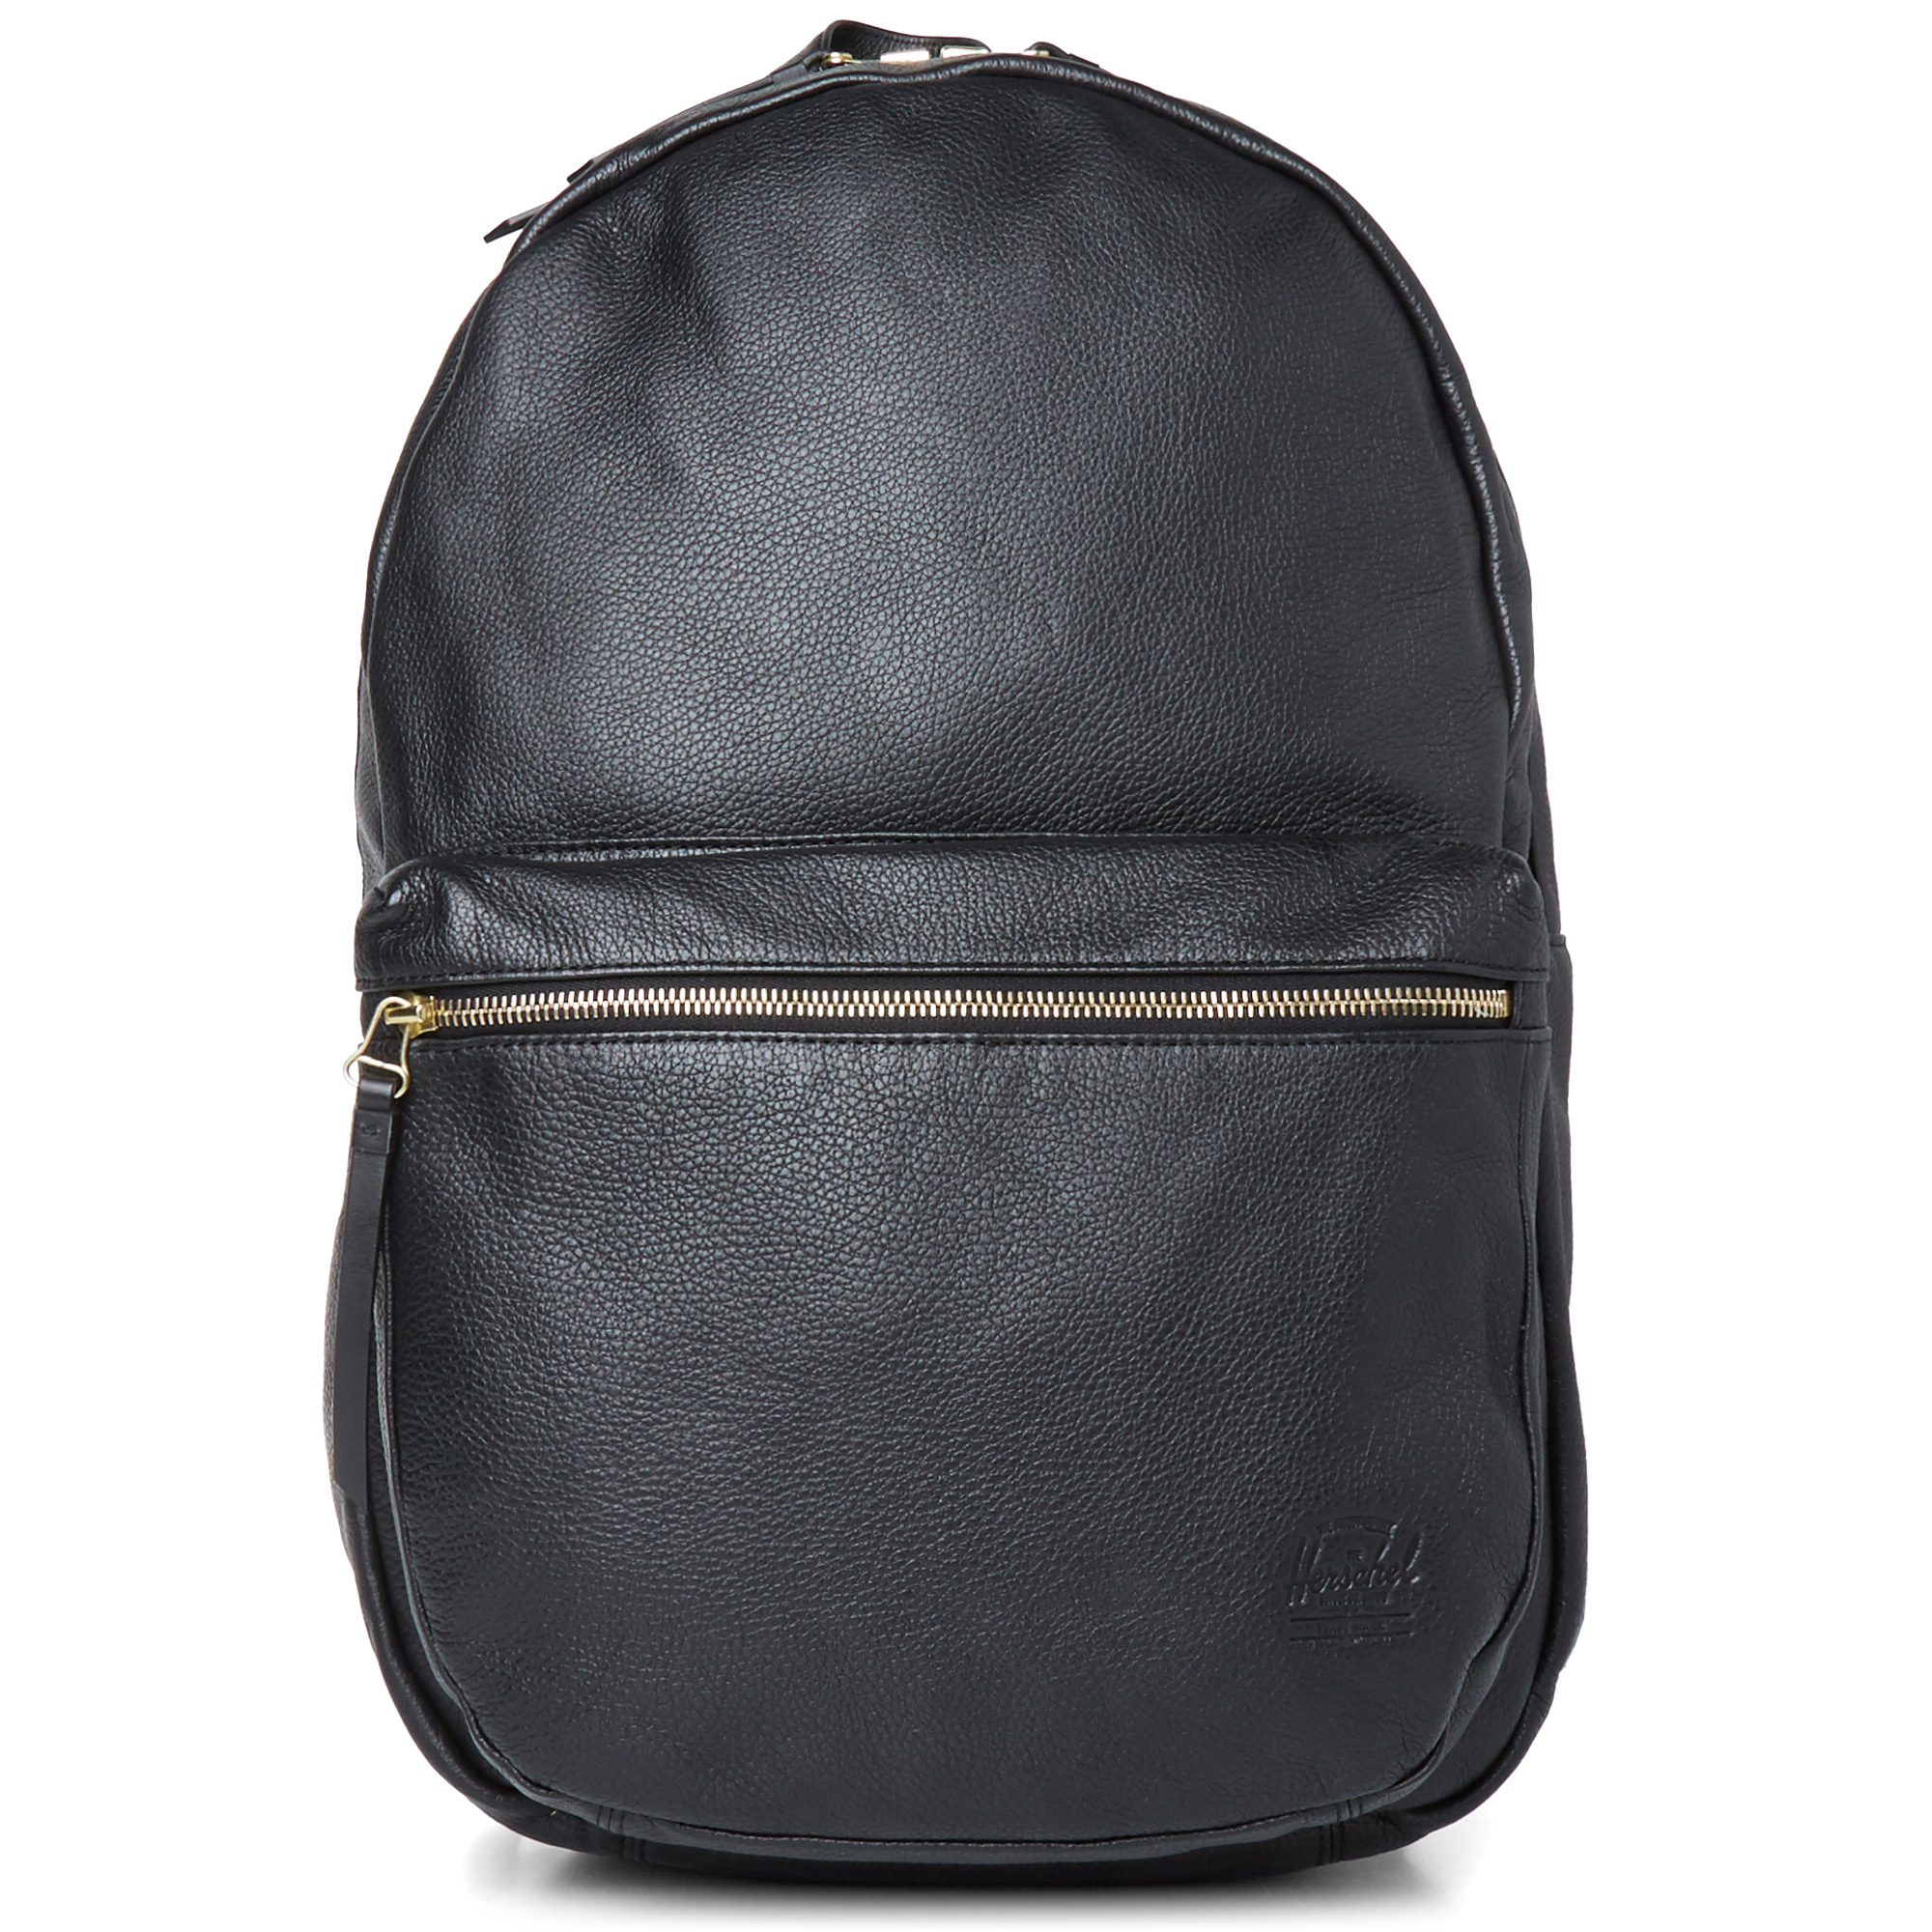 Leather Herschel Backpack ndrpwej1